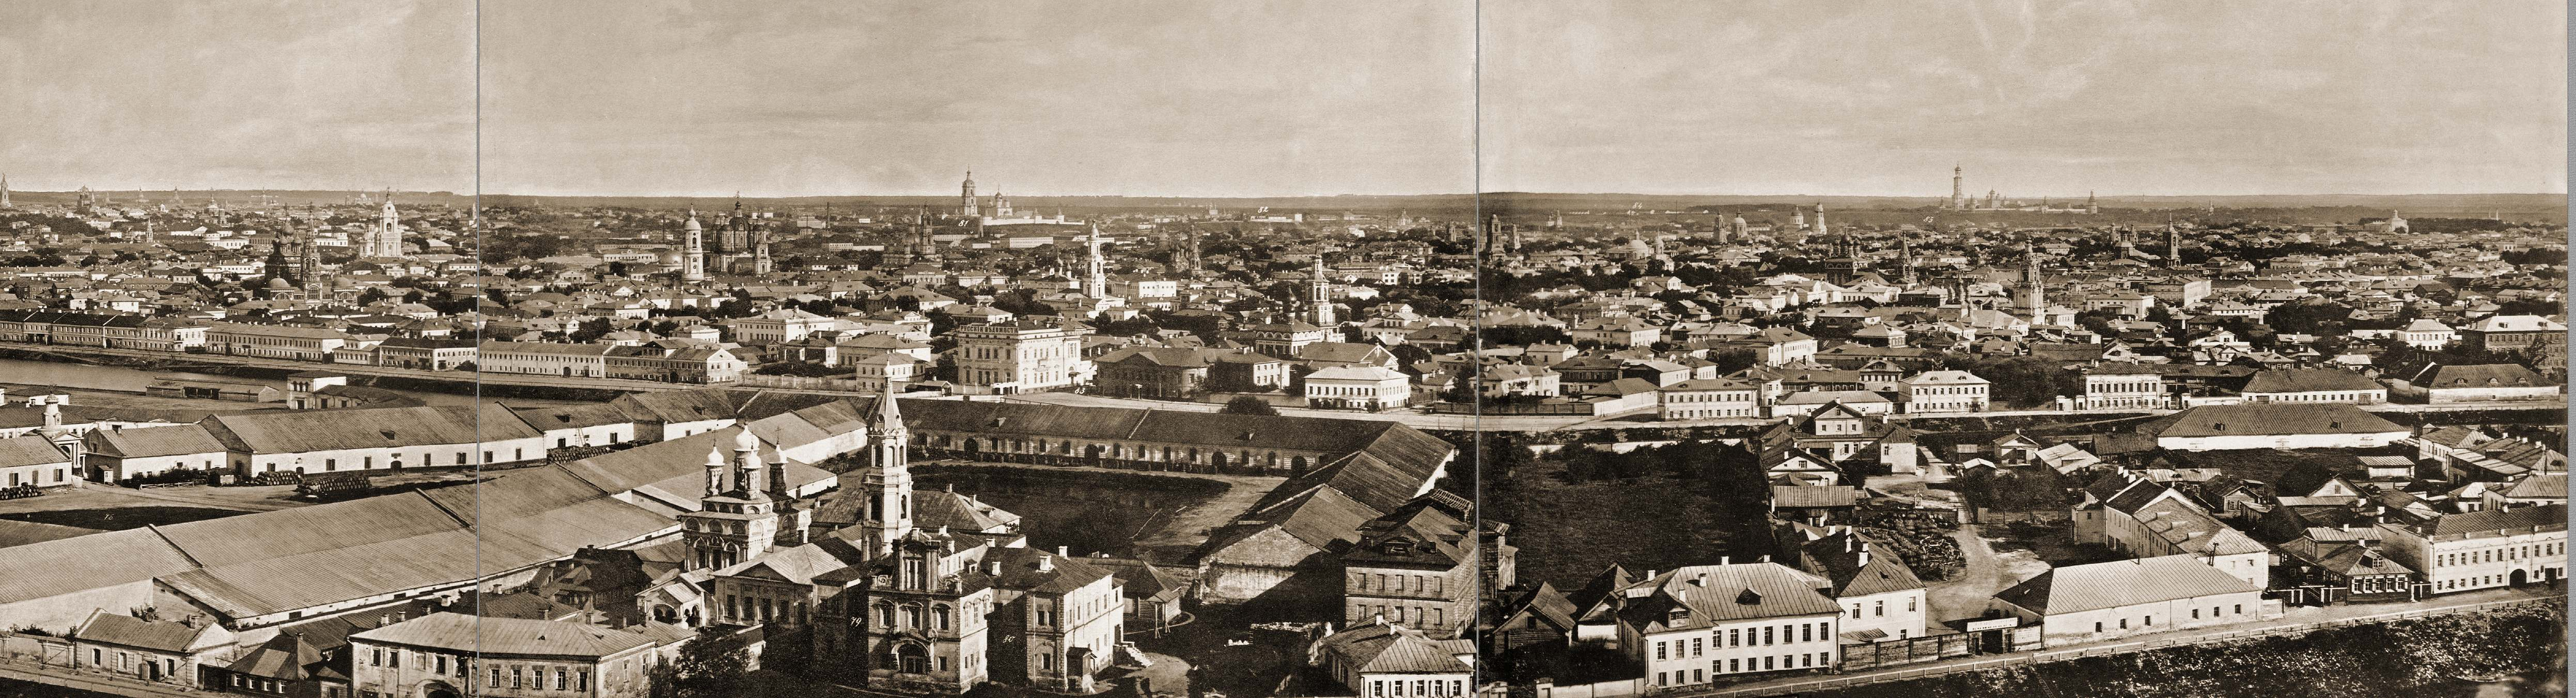 1867_moscow_russia_abandoned_1.jpg